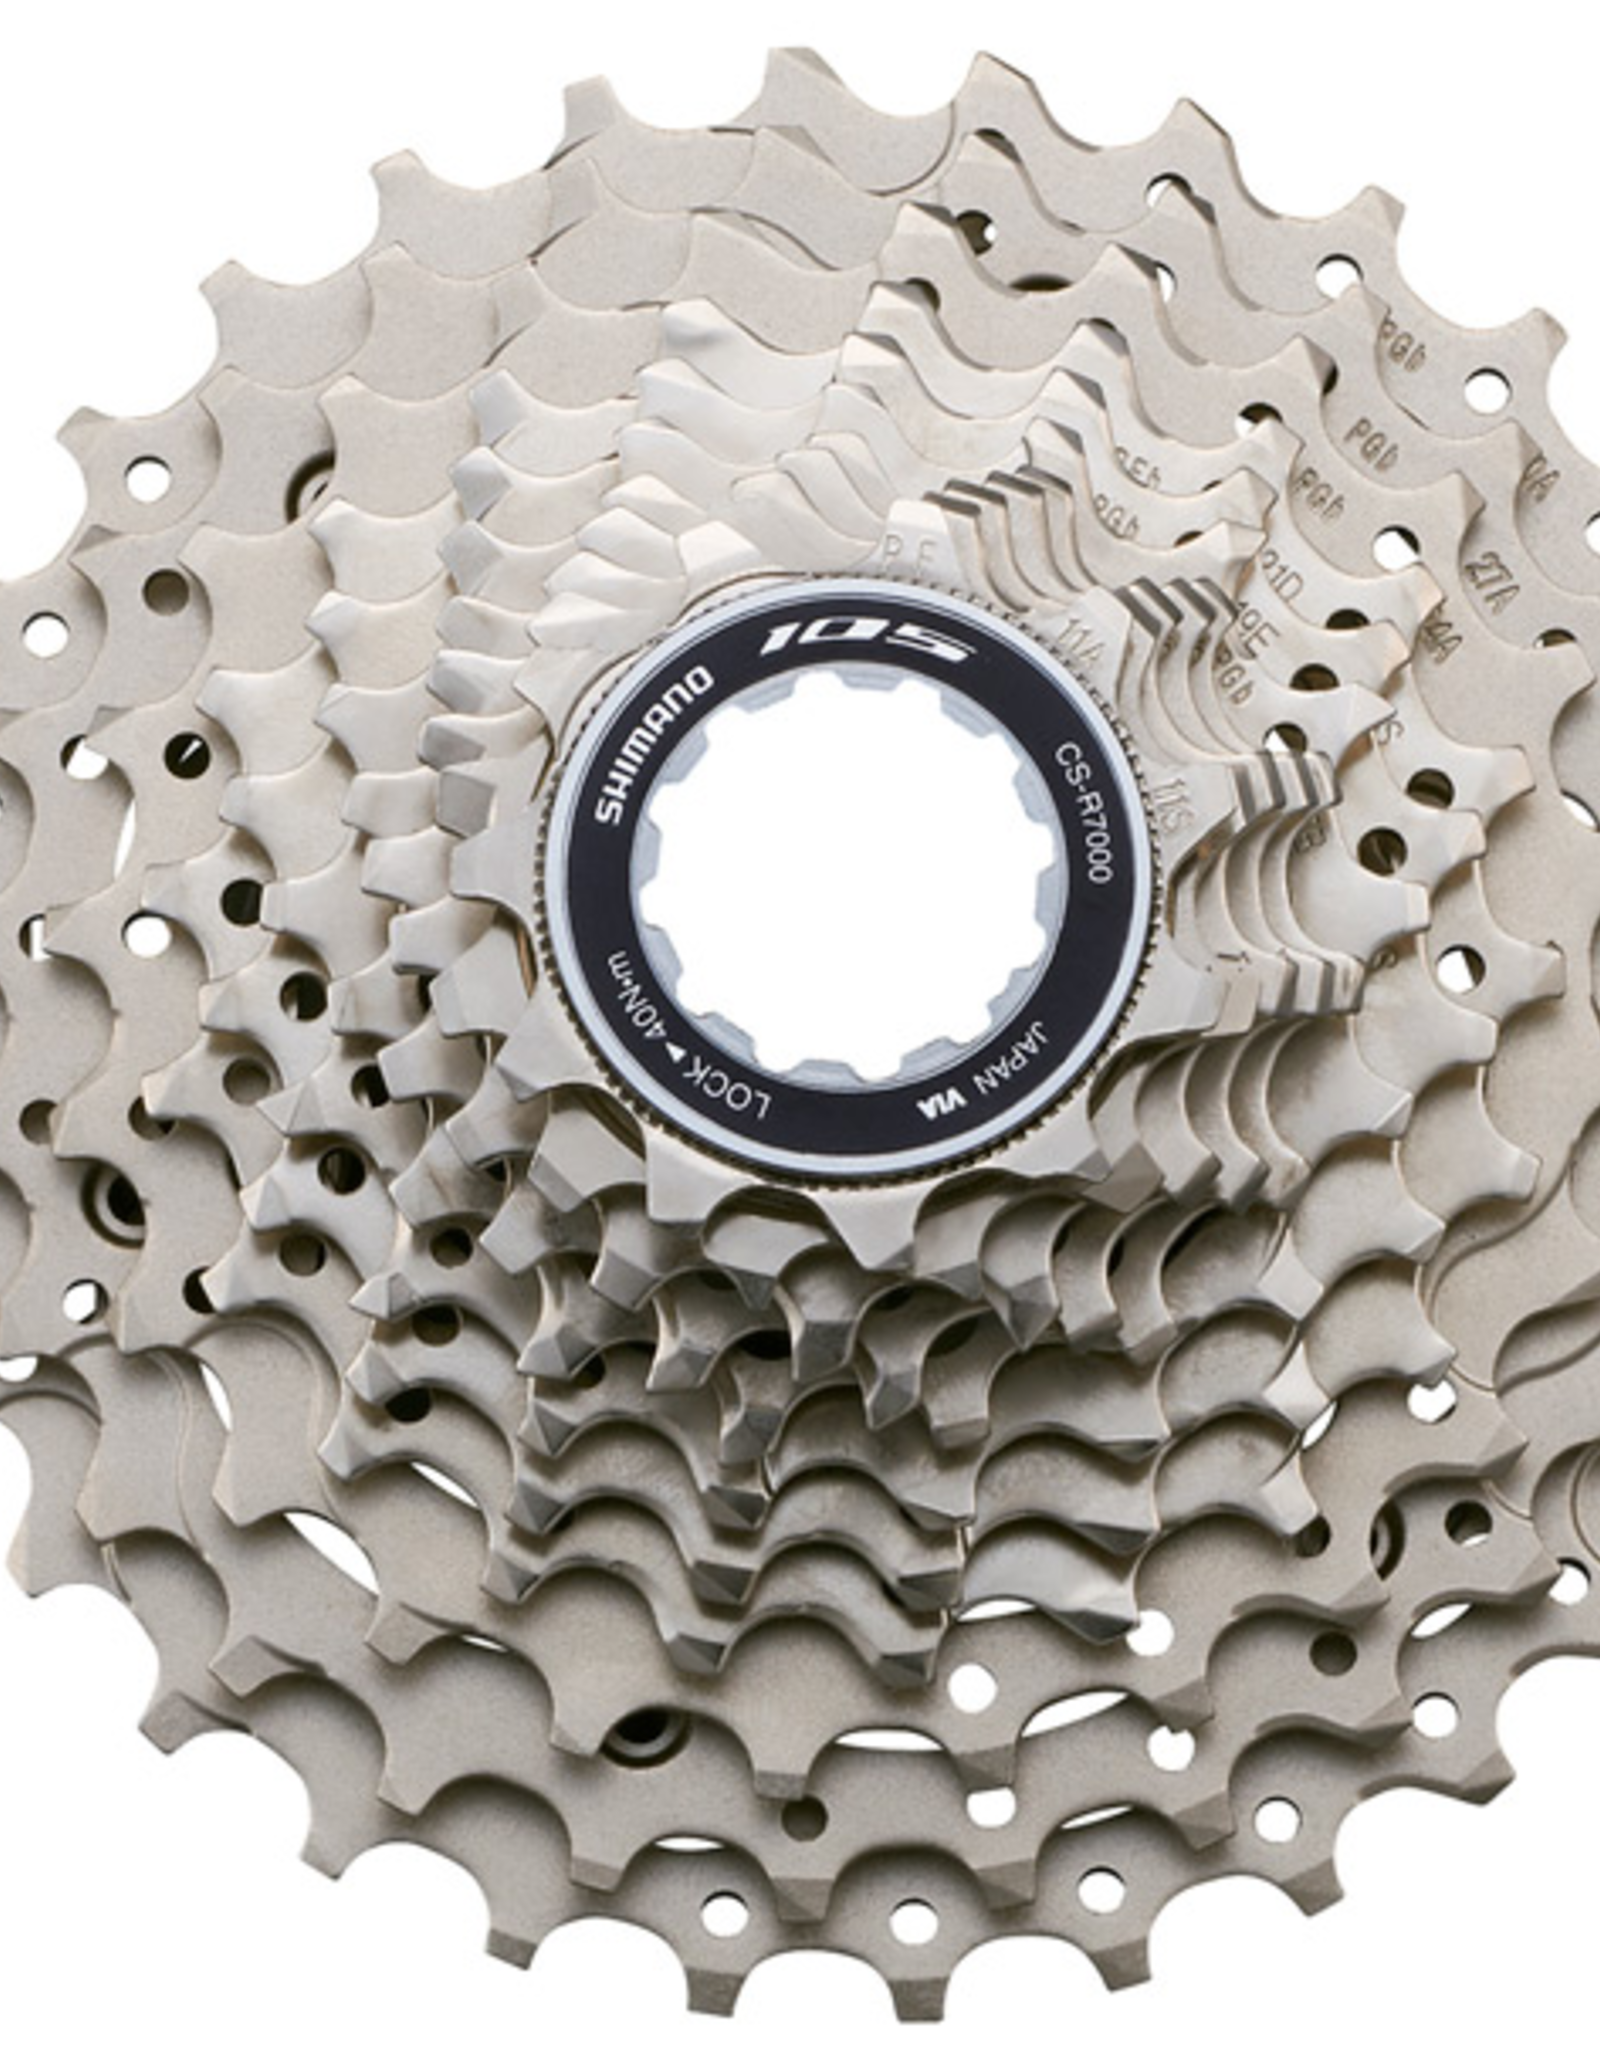 Shimano Shimano 105 R7000 11-28 11 Speed Cassette